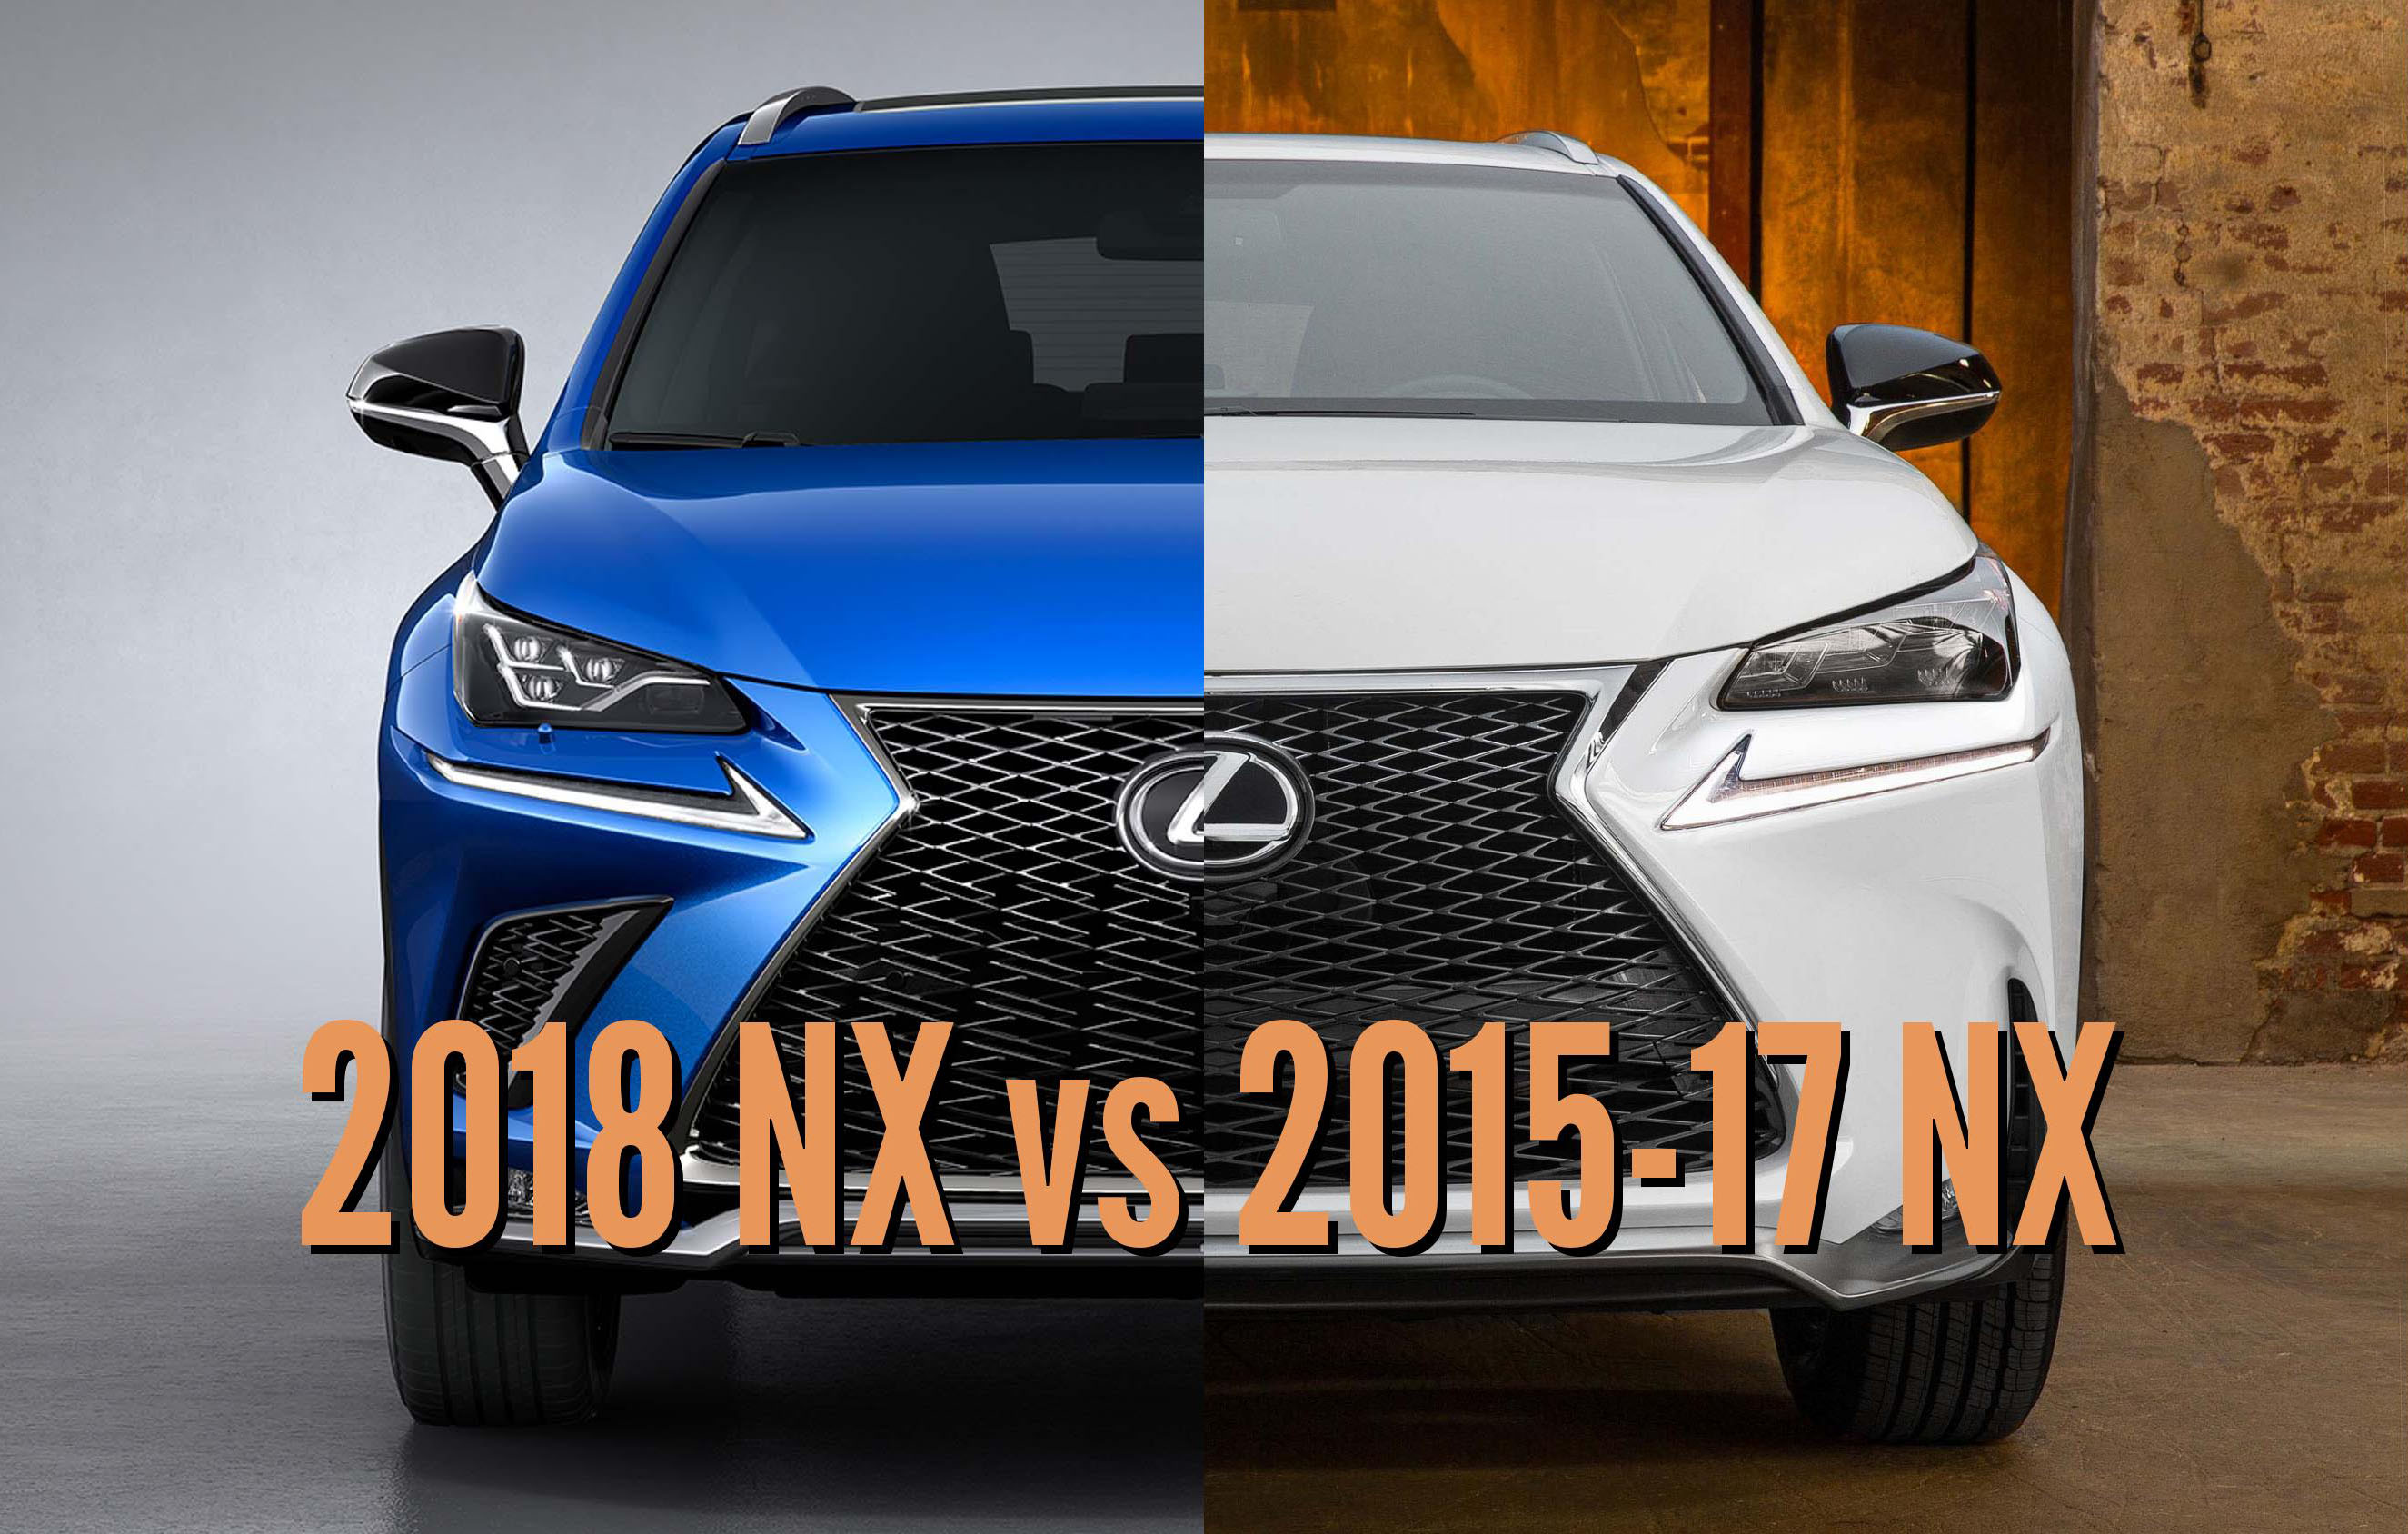 2018 lexus nx sport. simple 2018 2018 lexus nx vs 201517 facelift differences in photo comparison   between the axles with lexus nx sport